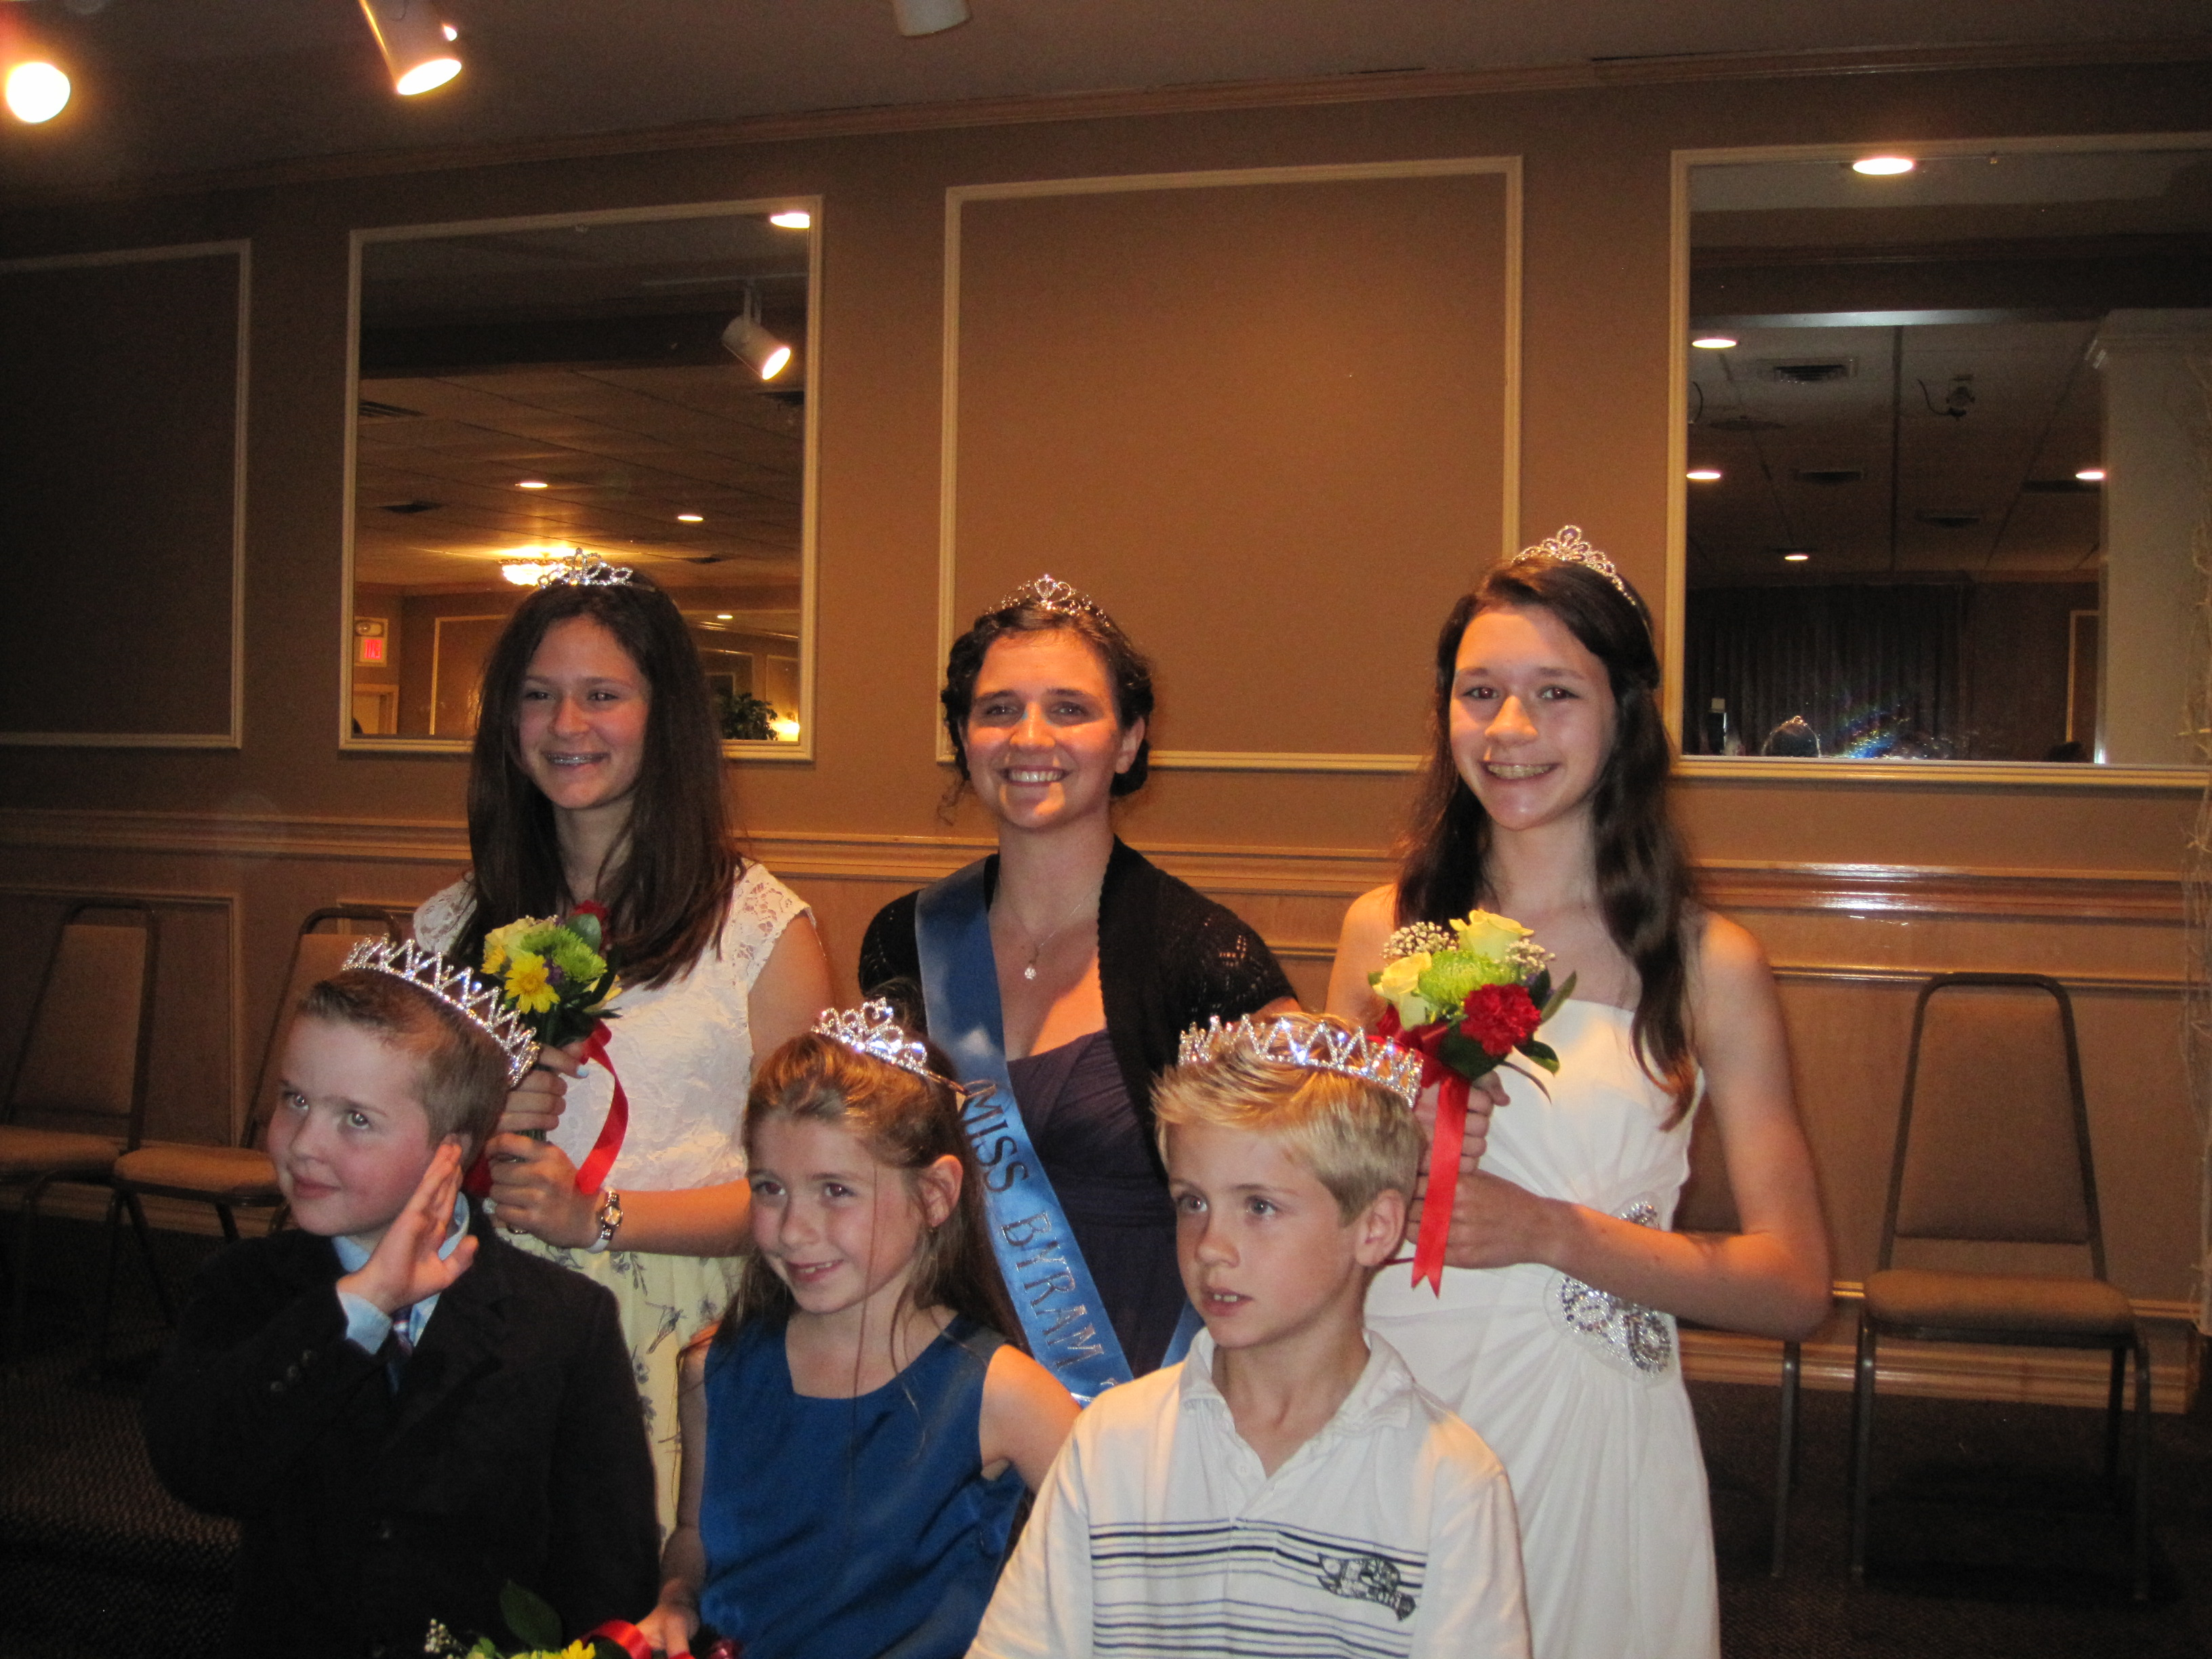 Winners of Royal Court 2013